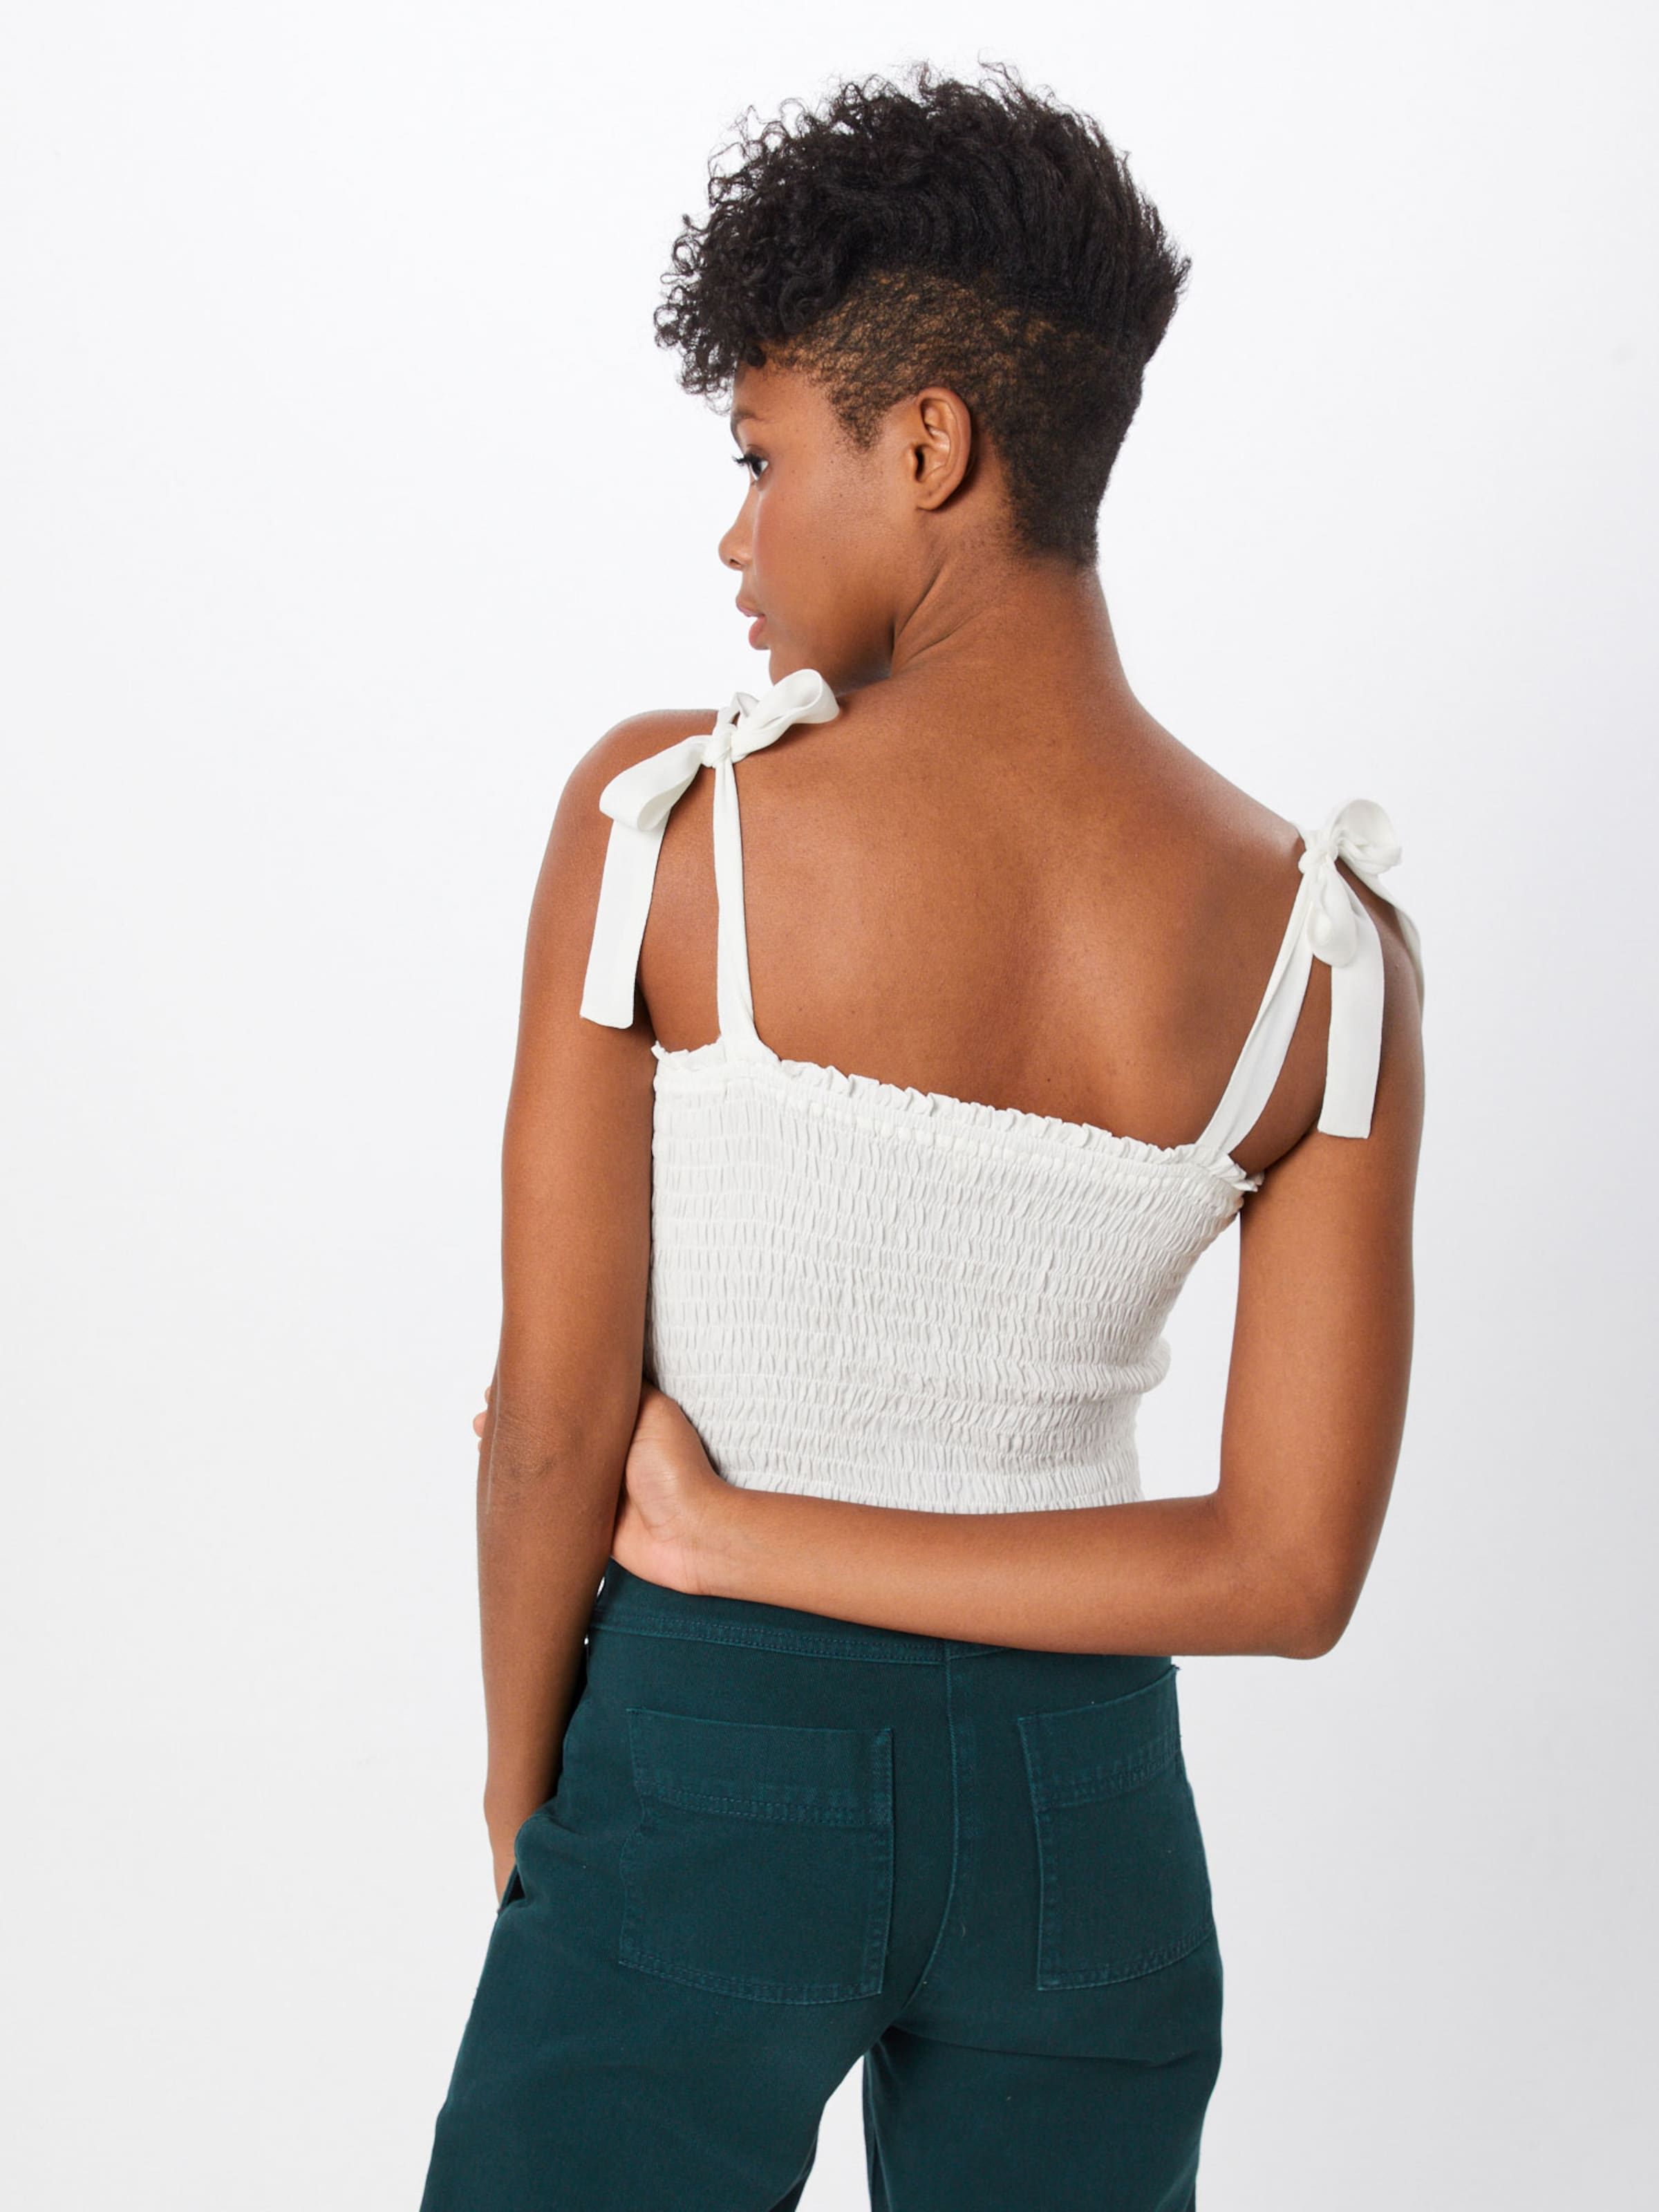 In Top Review Offwhite Review Offwhite Top In Review 2DH9IEWY